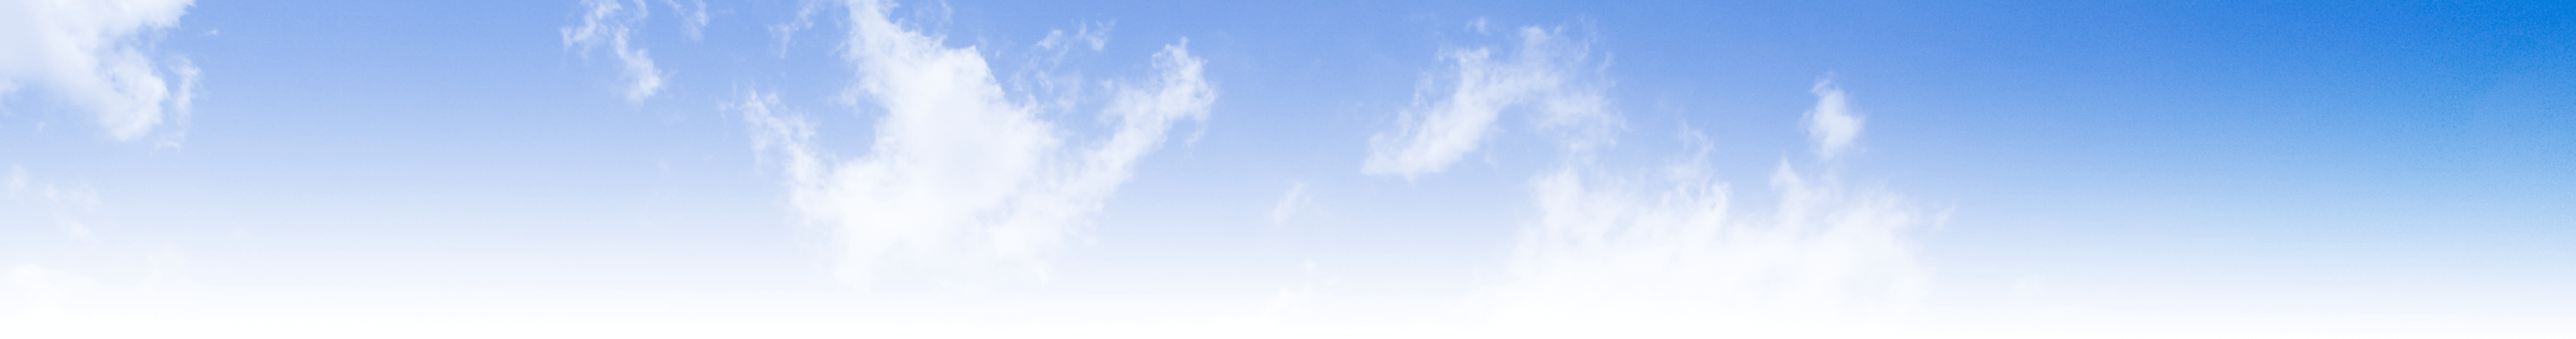 Gradient-Sky.png - AntiGravity Research